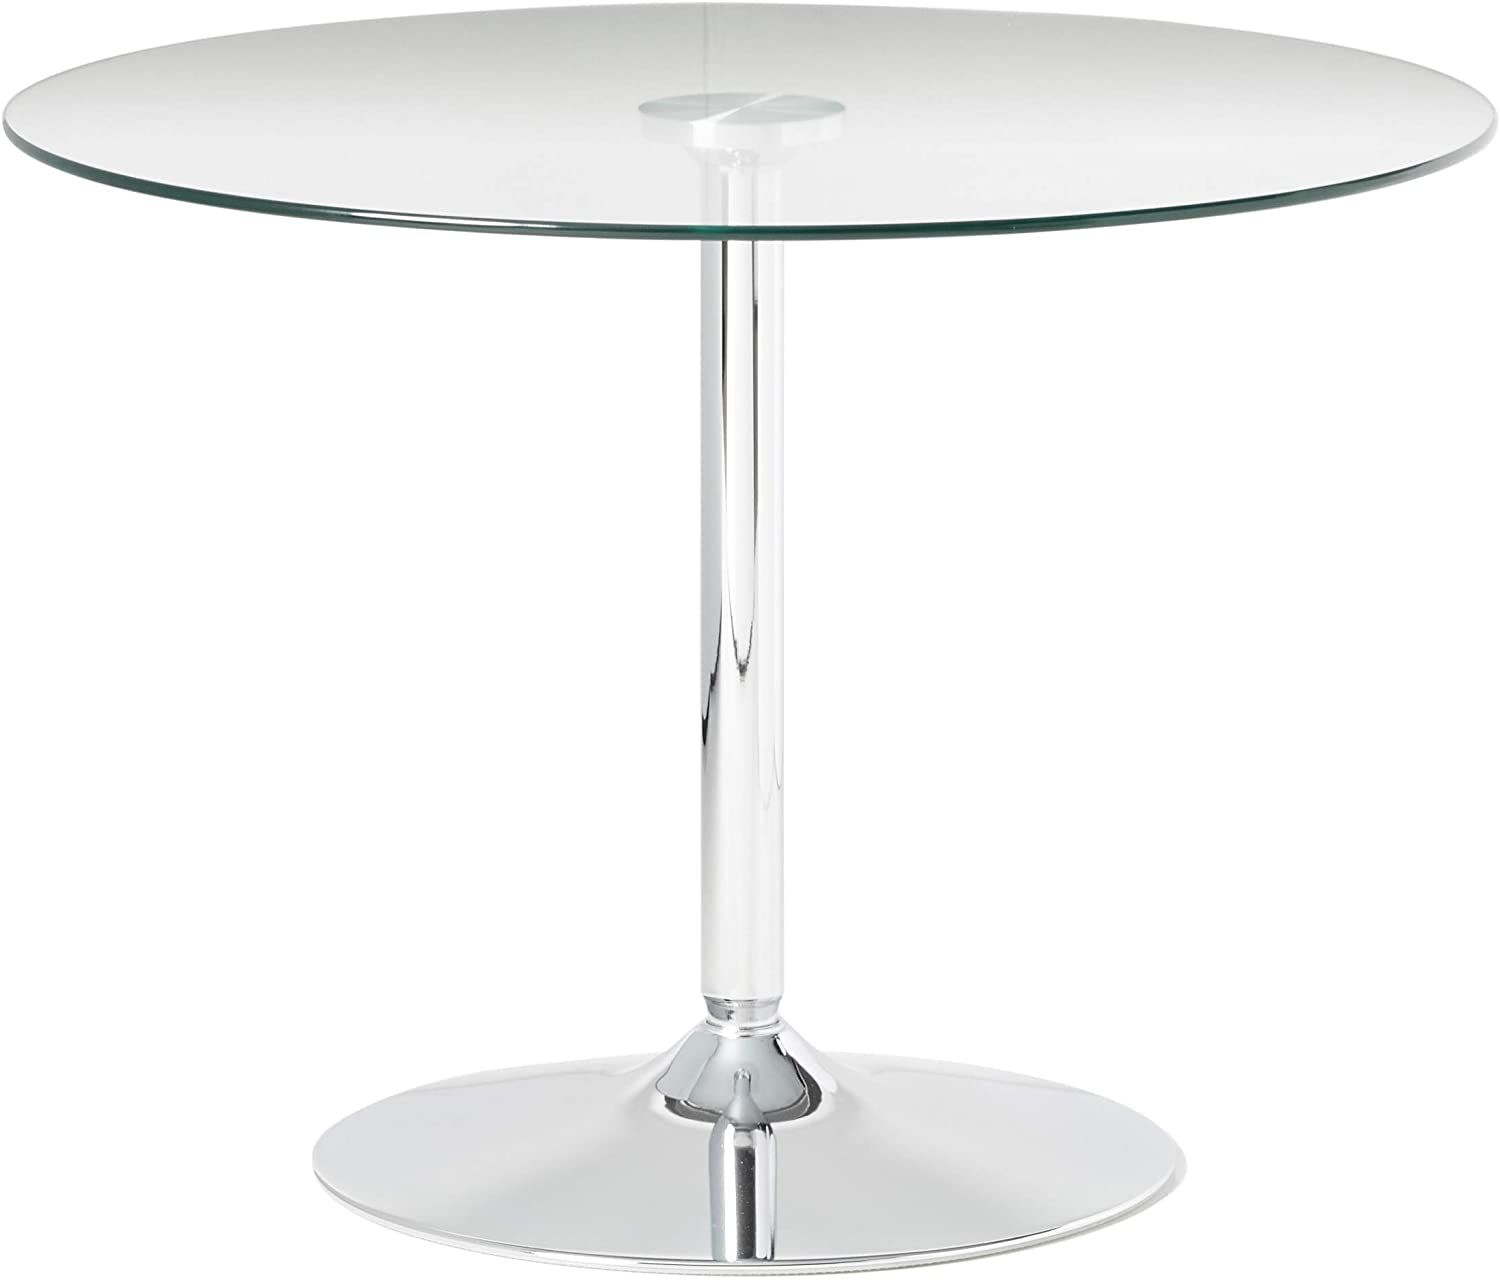 Flash Furniture 39 25 Round Glass Table With 29 H Chrome Base Round Glass Table Glass Table Flash Furniture [ 1280 x 1500 Pixel ]